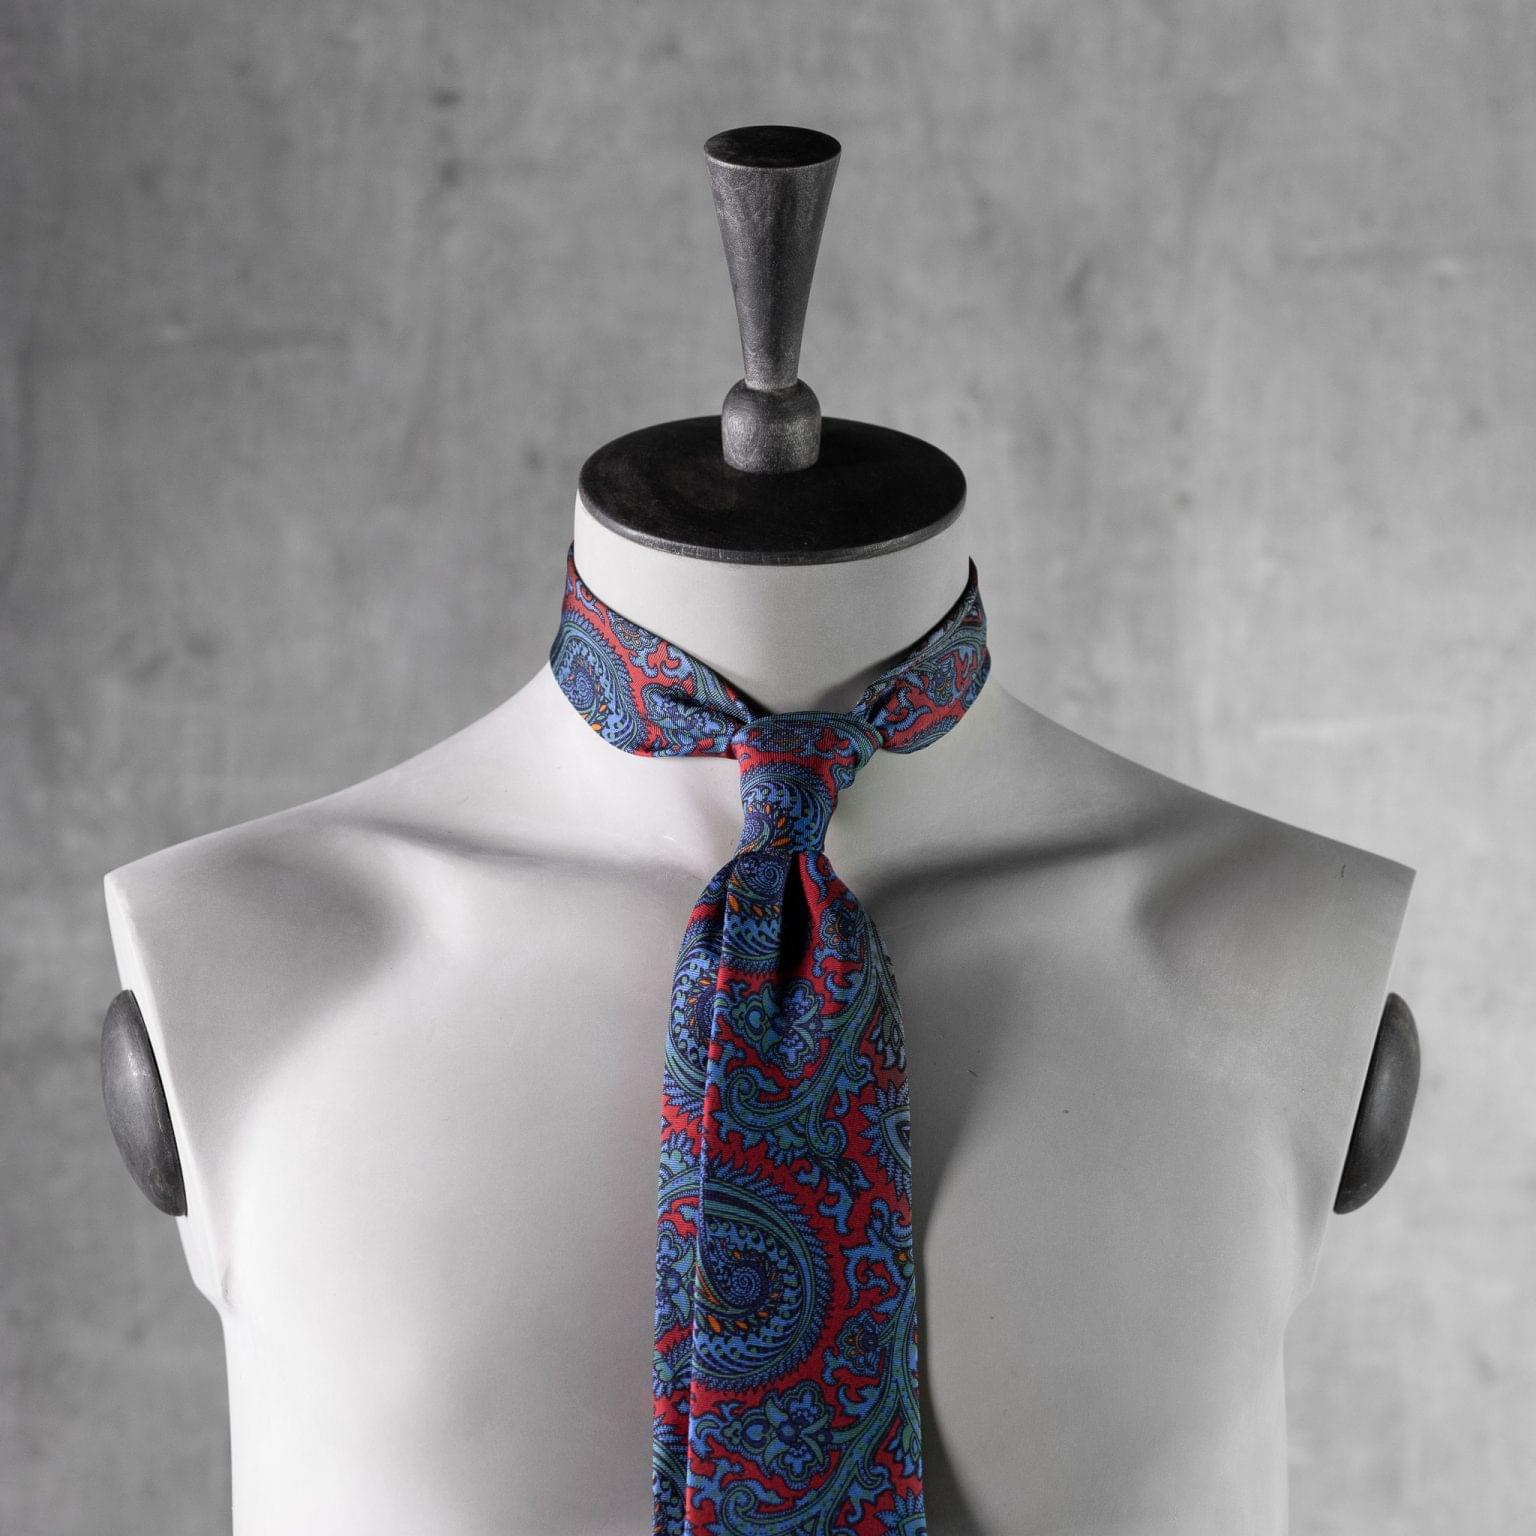 ANCIENT-MADDER-0489-Tie-Initials-Corbata-Iniciales-The-Seelk-3